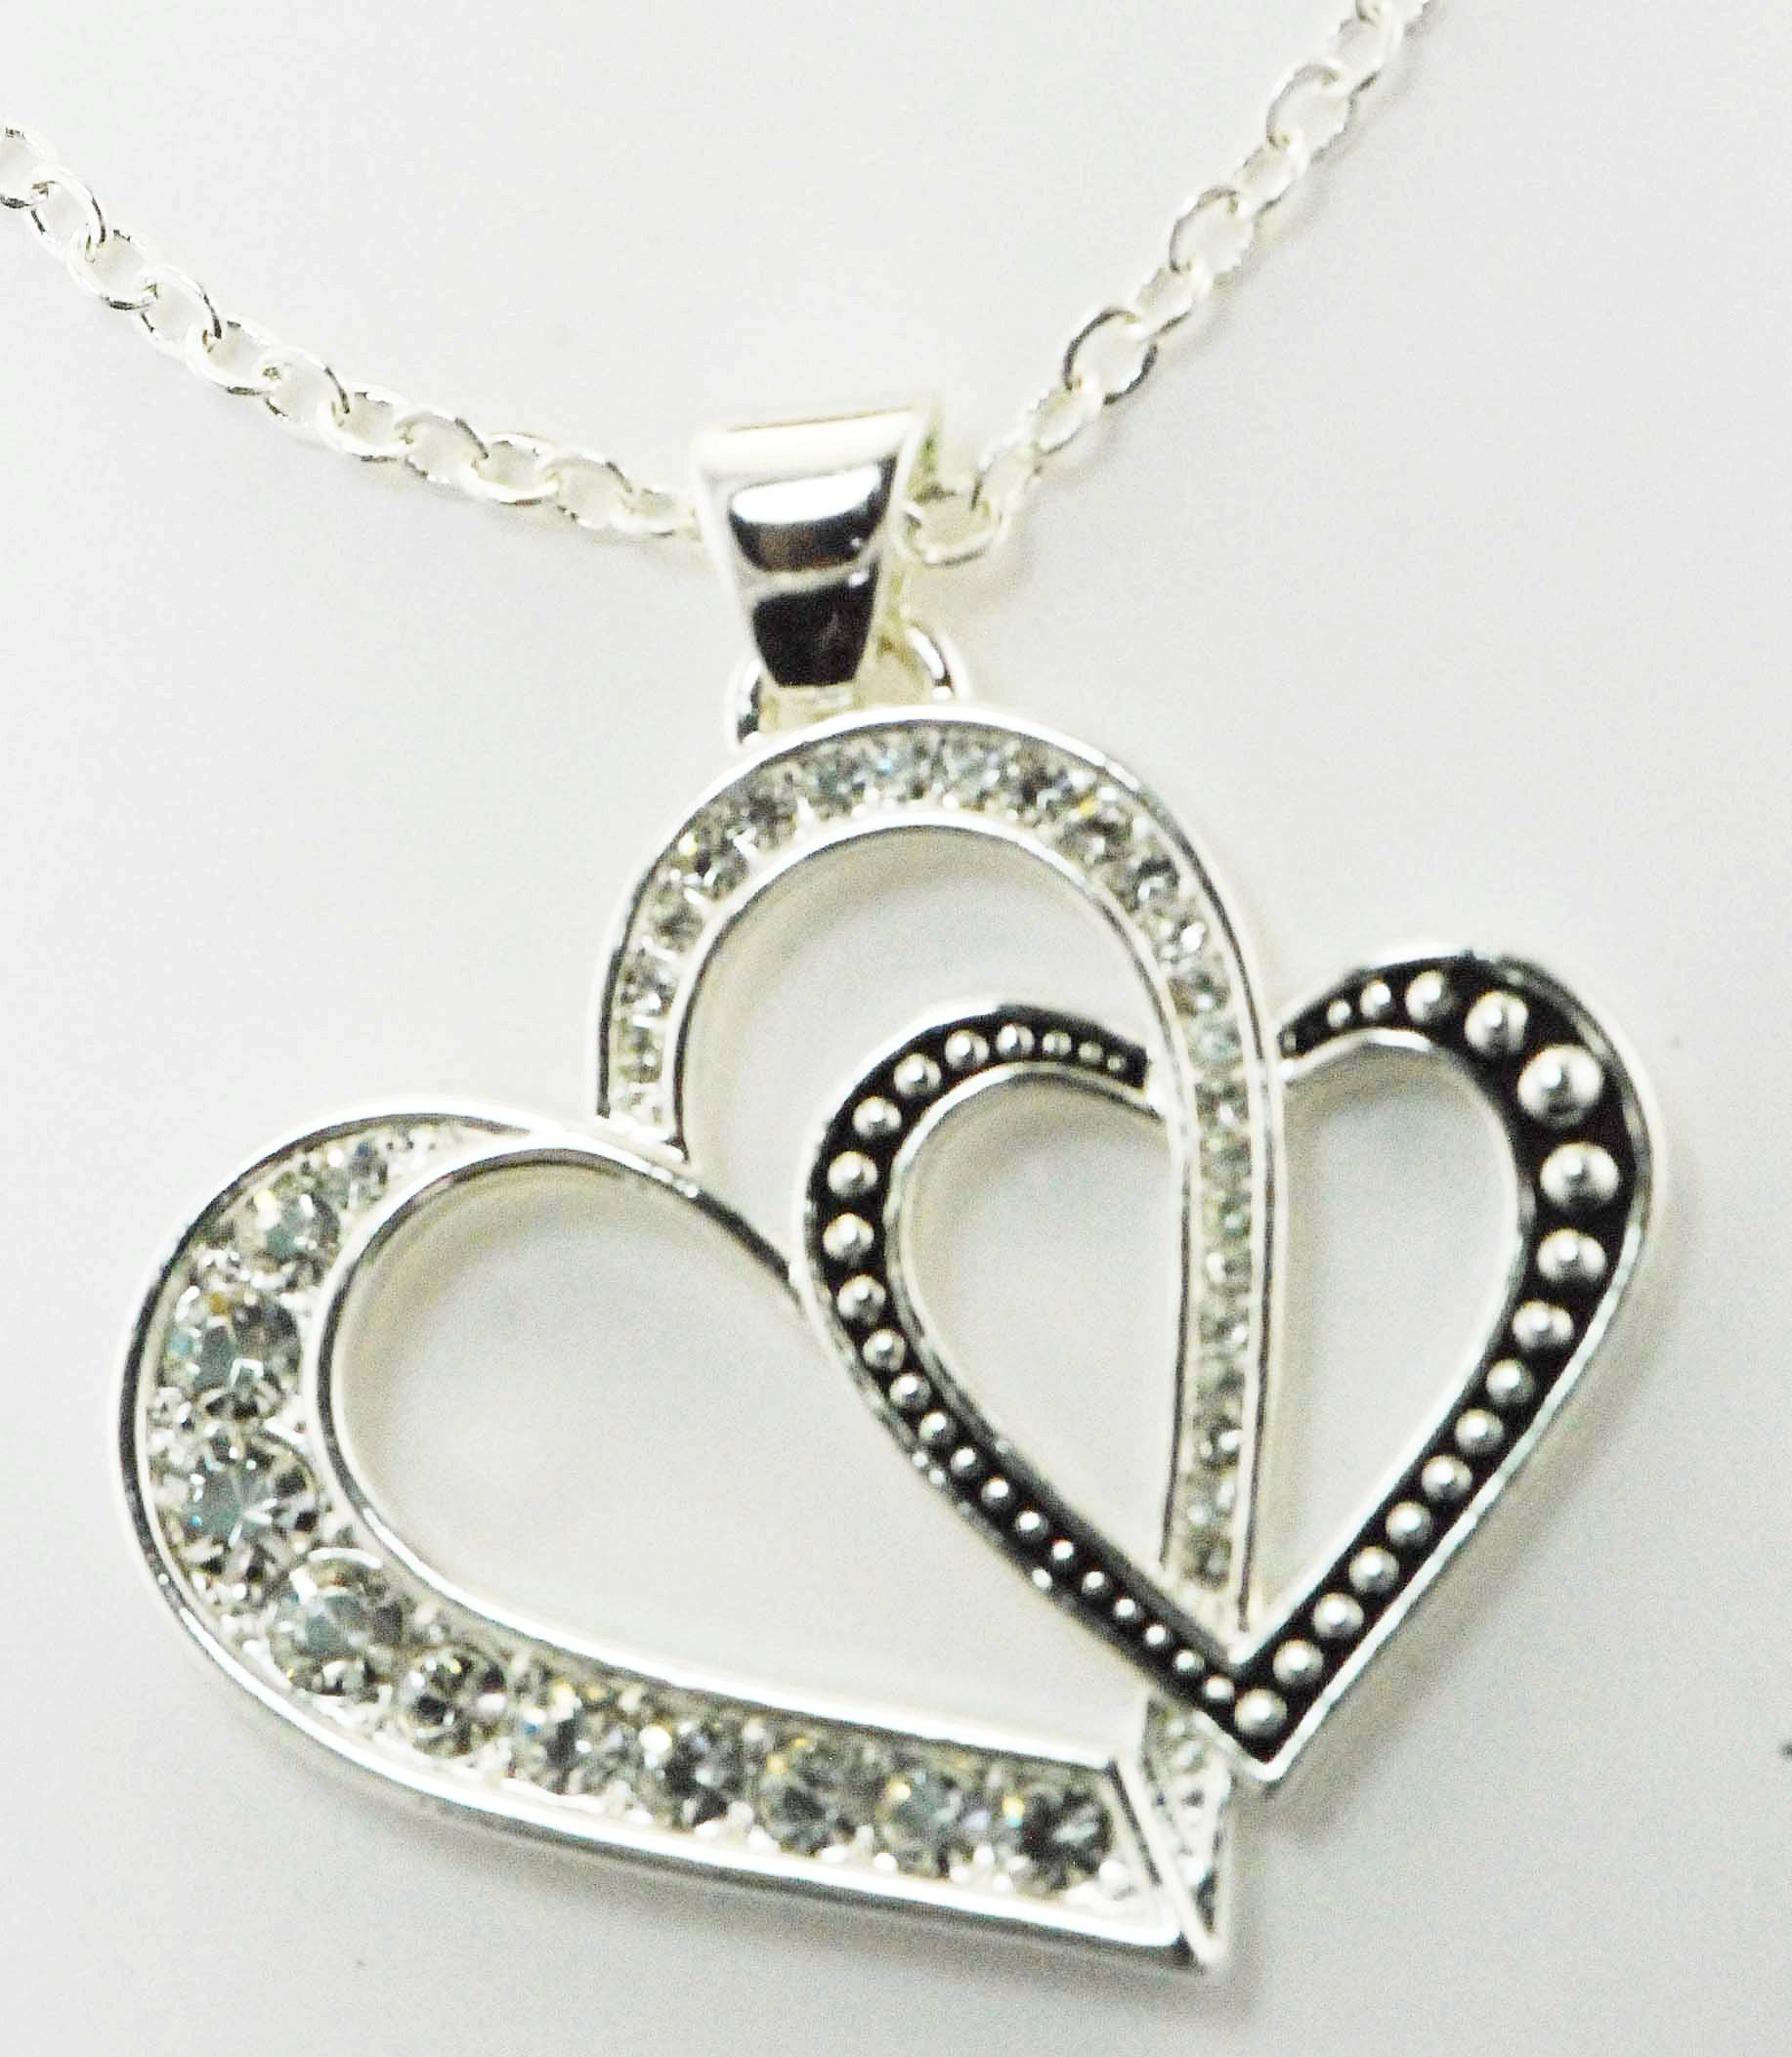 Western Edge Jewelry Double Heart Necklace